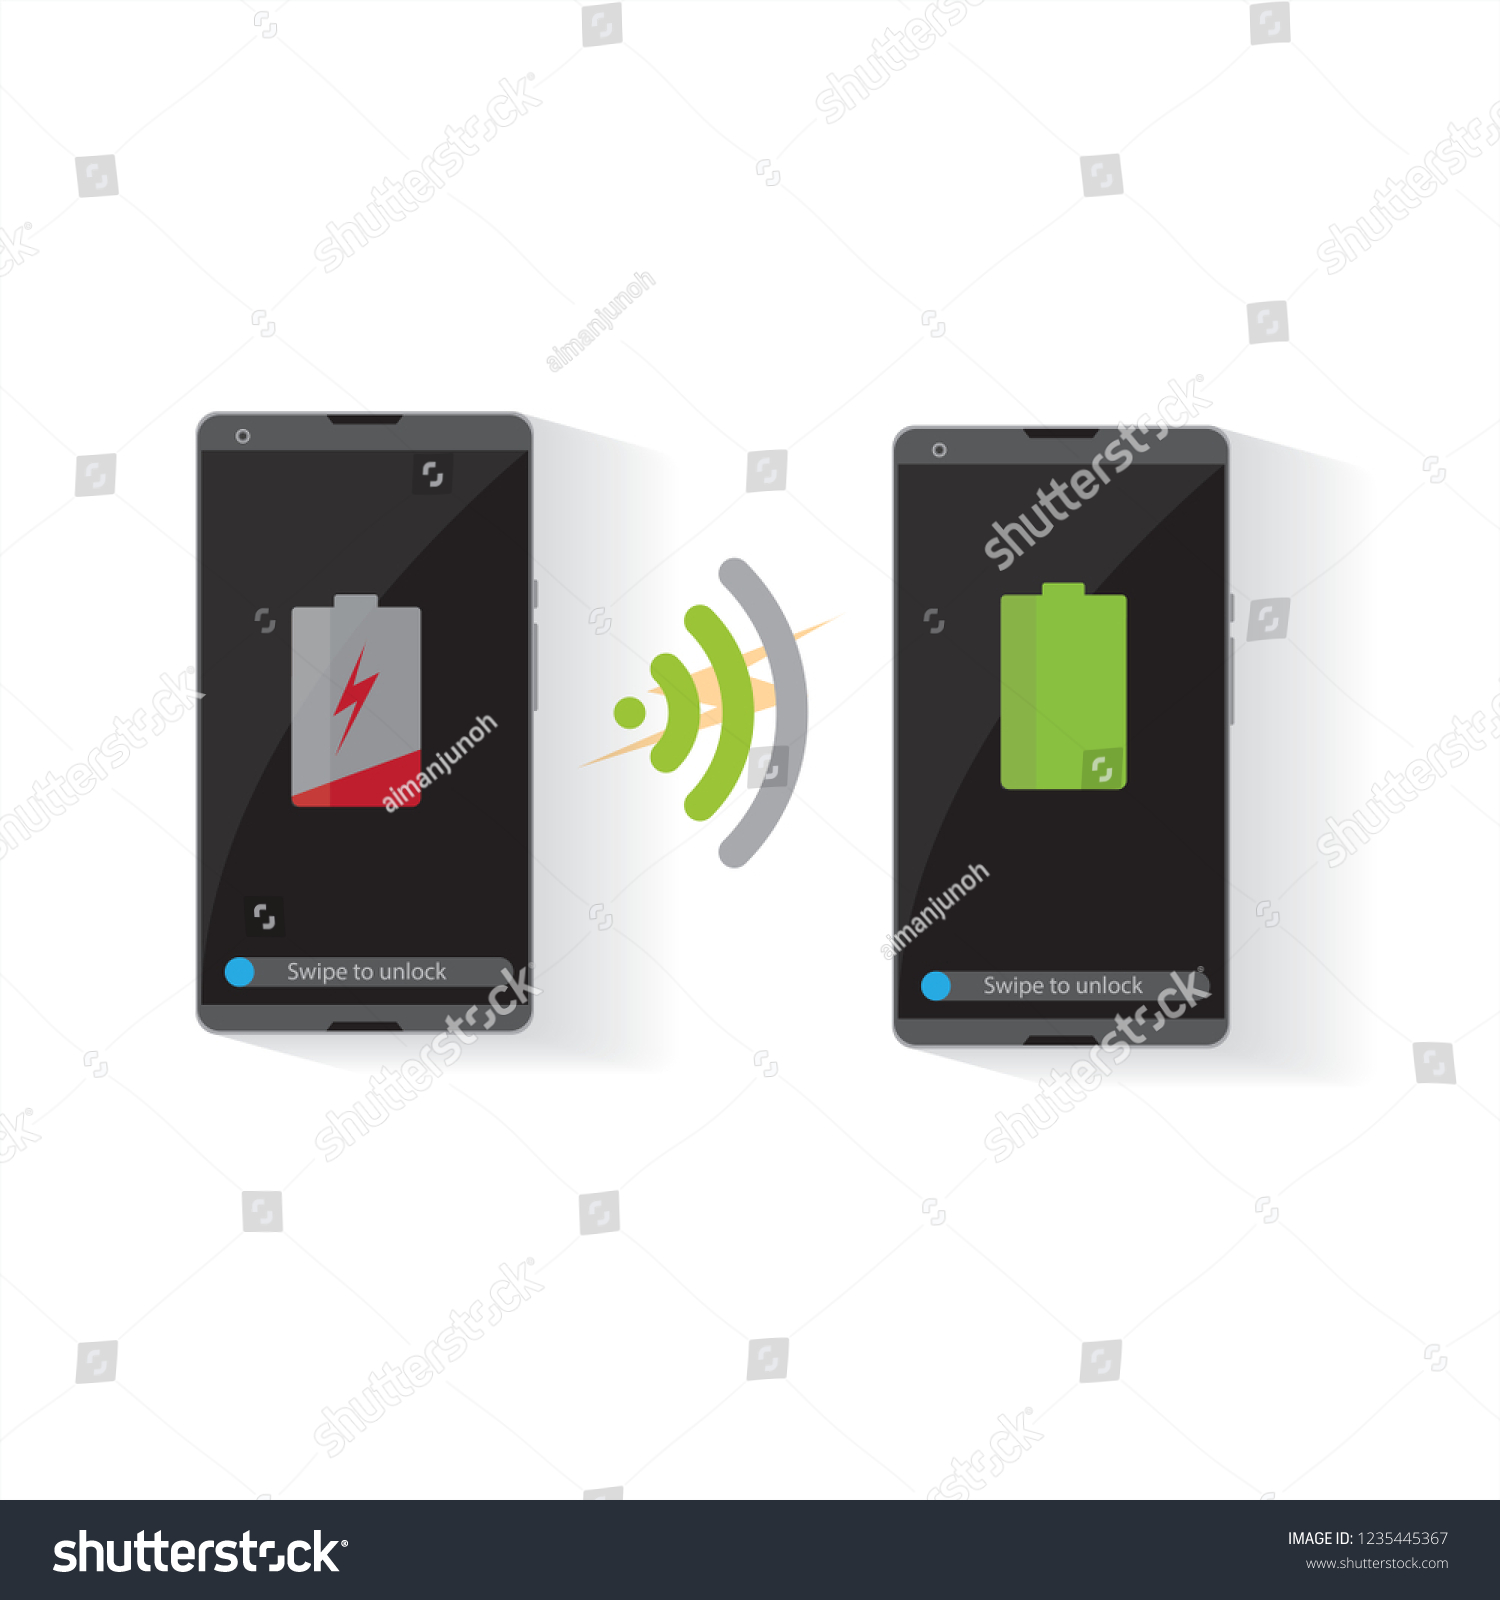 Wireless Battery Charger Flat Design Wireless Battery Charger Smartphone Stock Vector